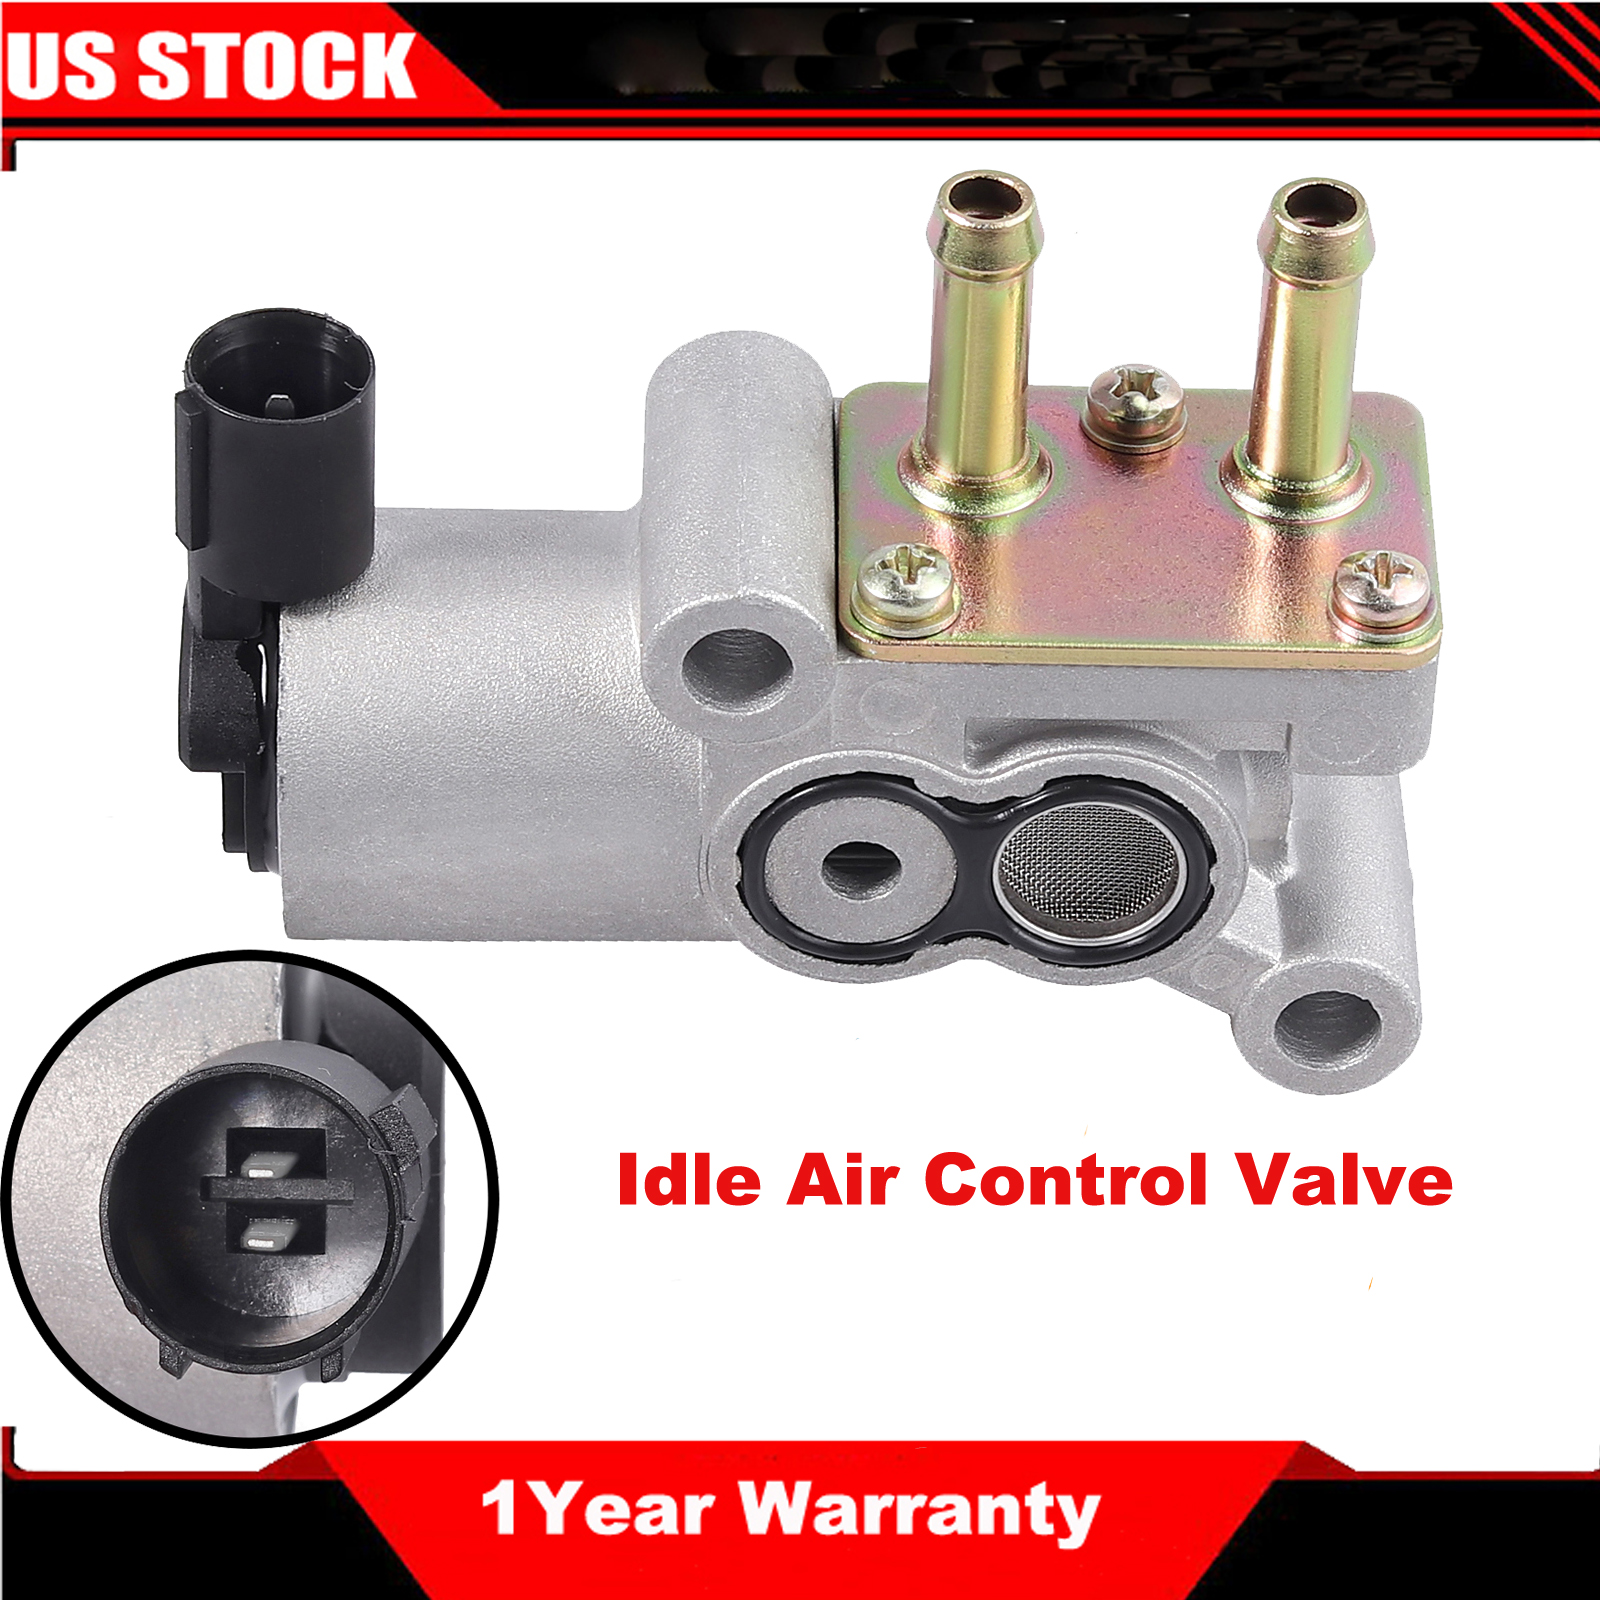 Fuel Injection Idle Air Control Valve For 97-01 Honda CR-V 2.0L-L4 AC275